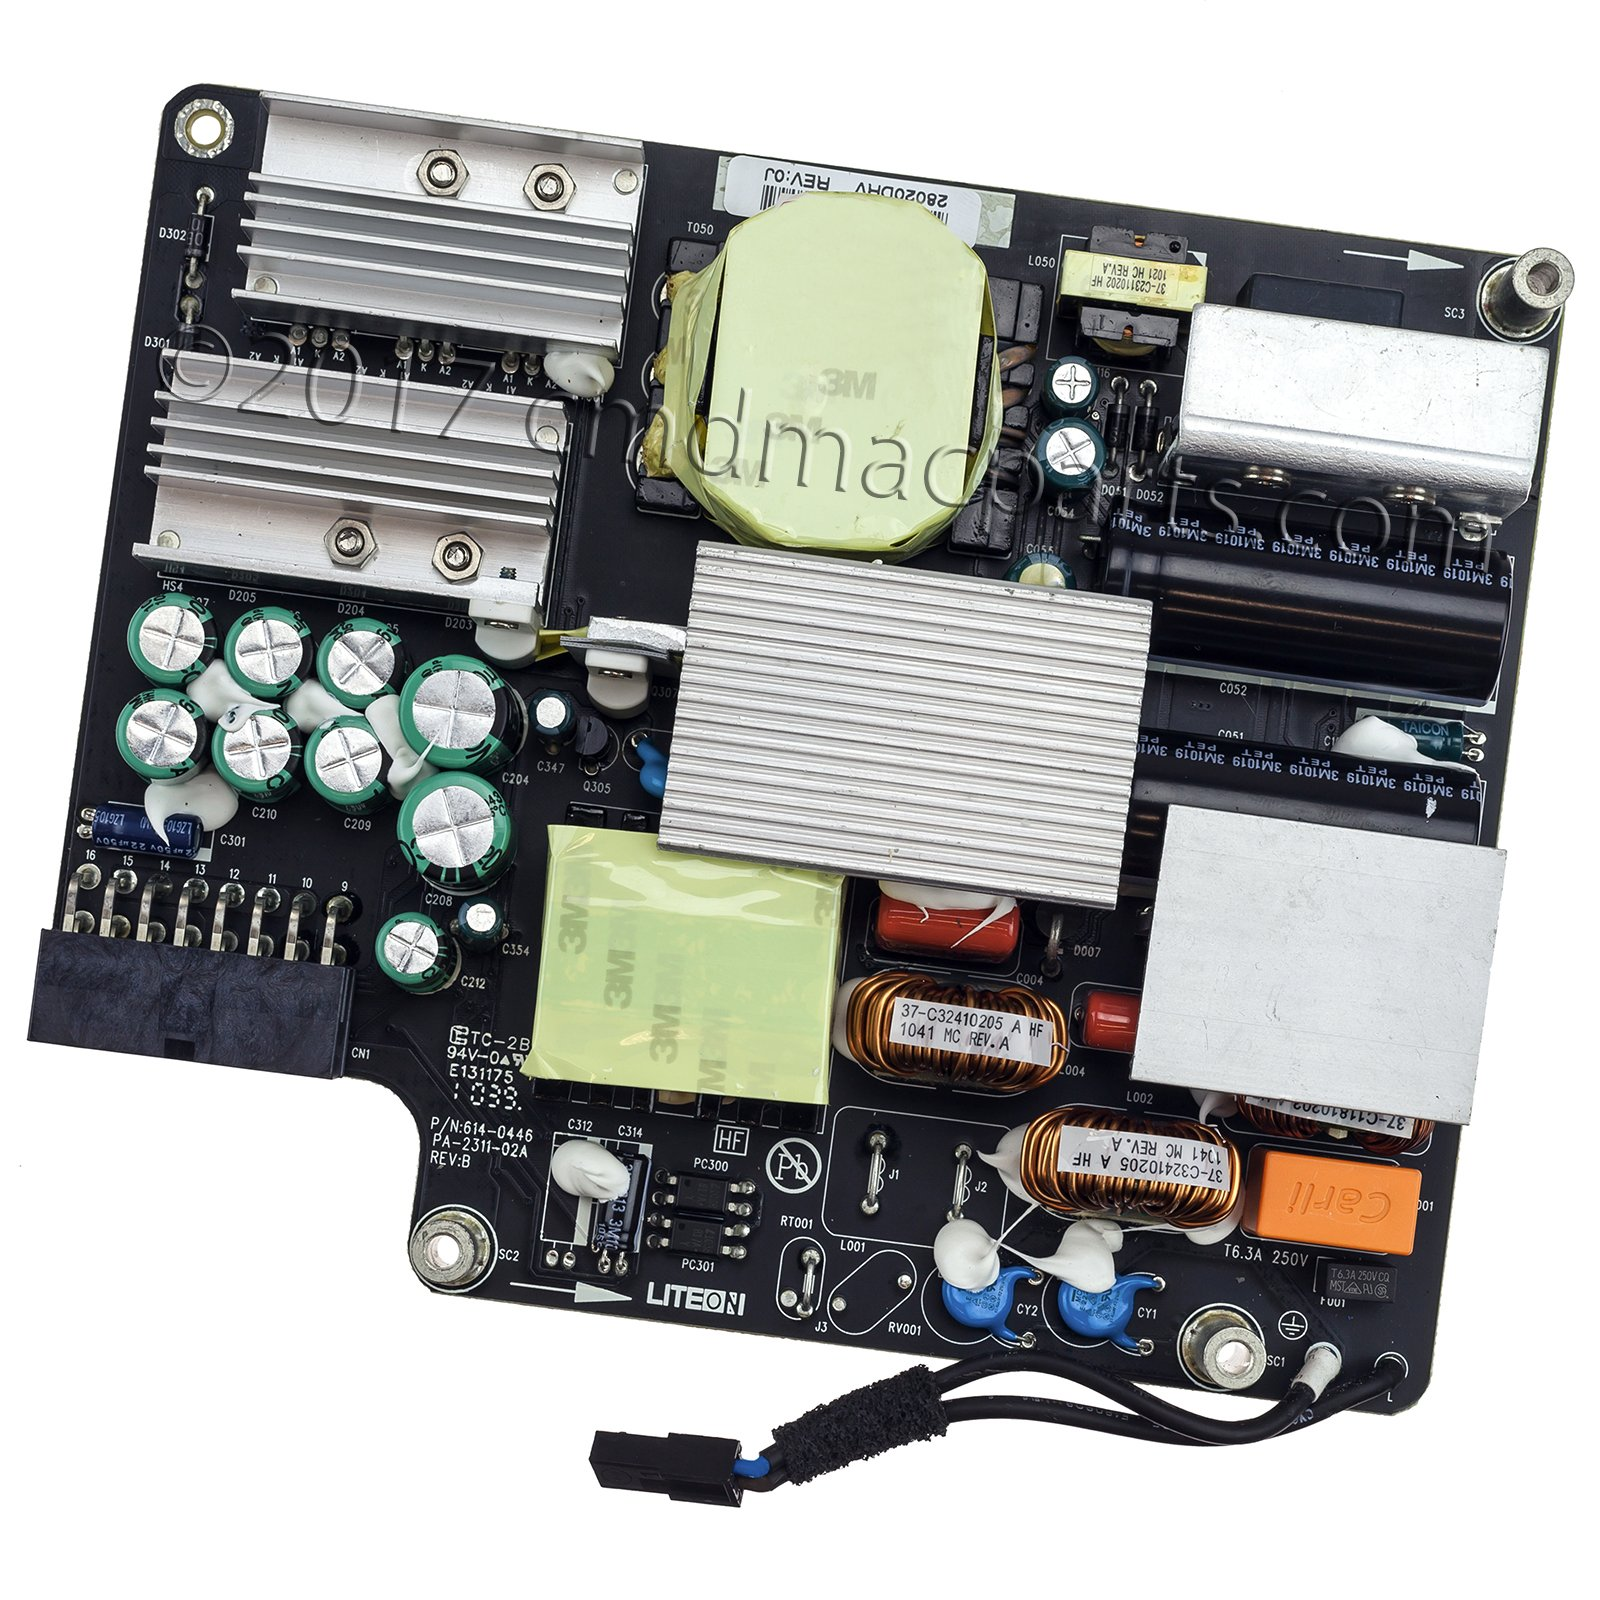 COMMAND MAC PARTS - Power Supply 310W - For Apple iMac 27'' A1312 (Late 2009 - Mid 2011) by Command Mac Parts (Image #1)